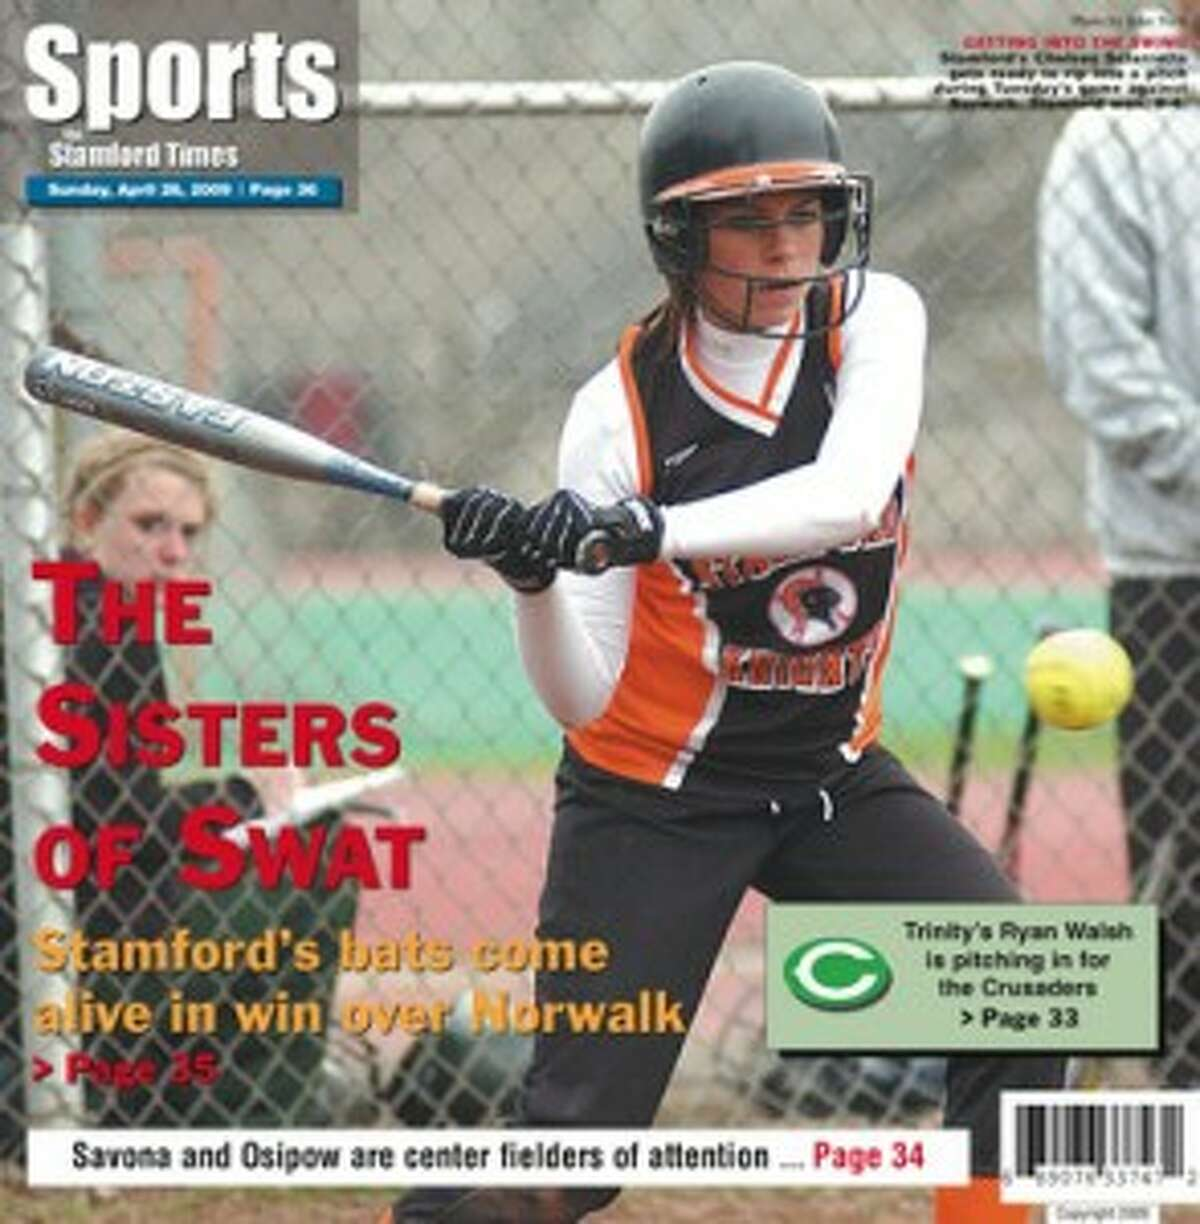 This Week In The Stamford Times (April 26, 2009 edition)